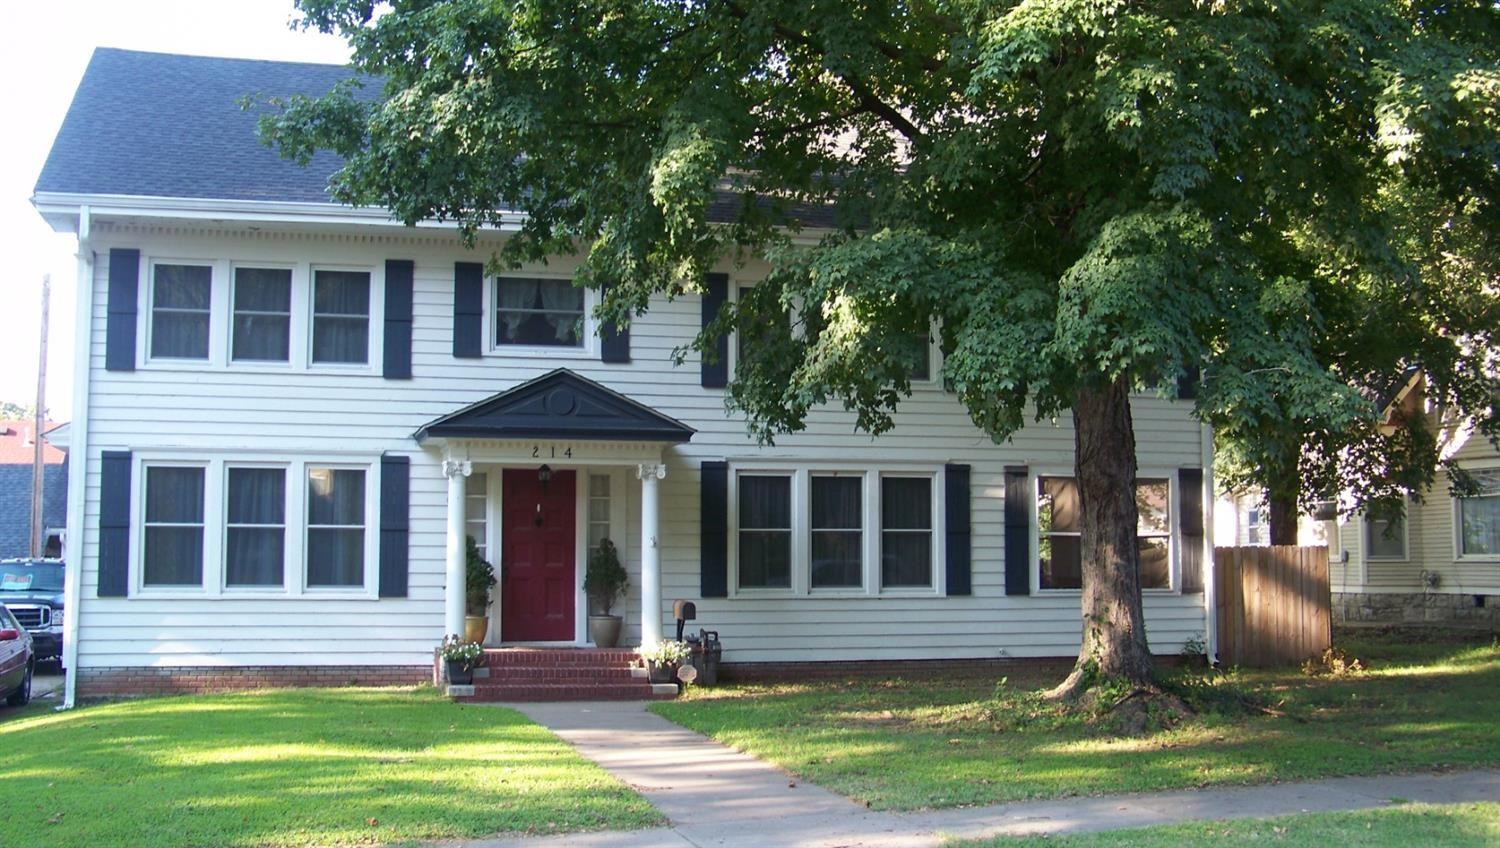 Historic Home for Sale in Chanute, KS